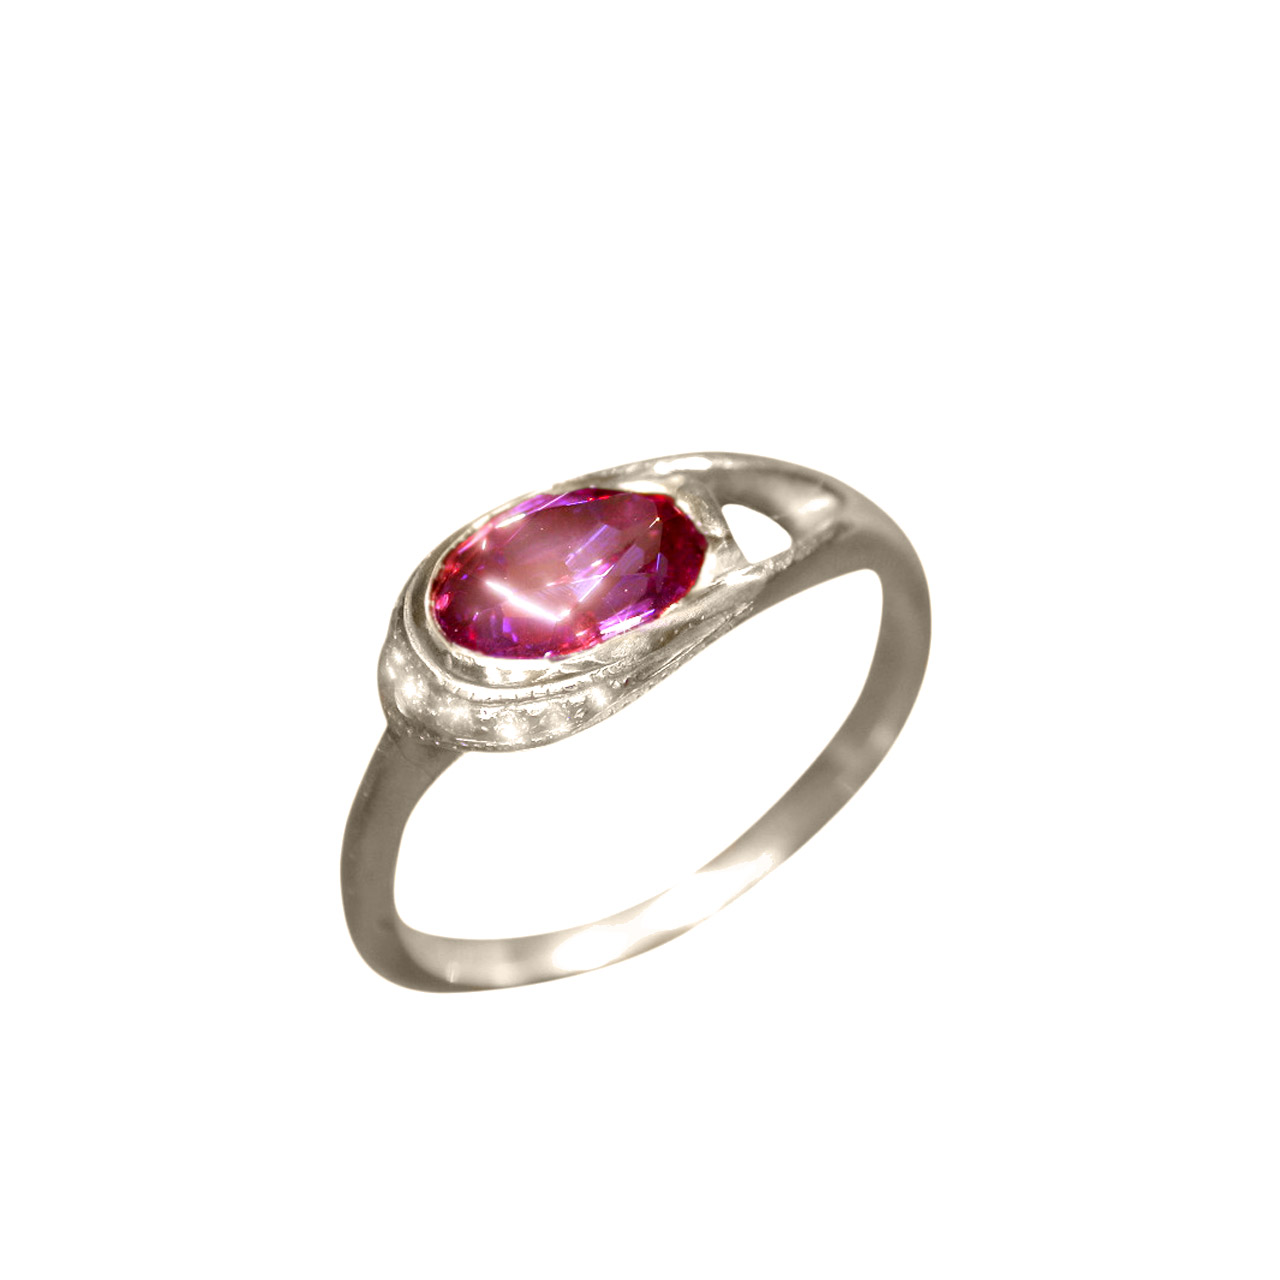 Garnet-Rhodolite & Diamond Ring